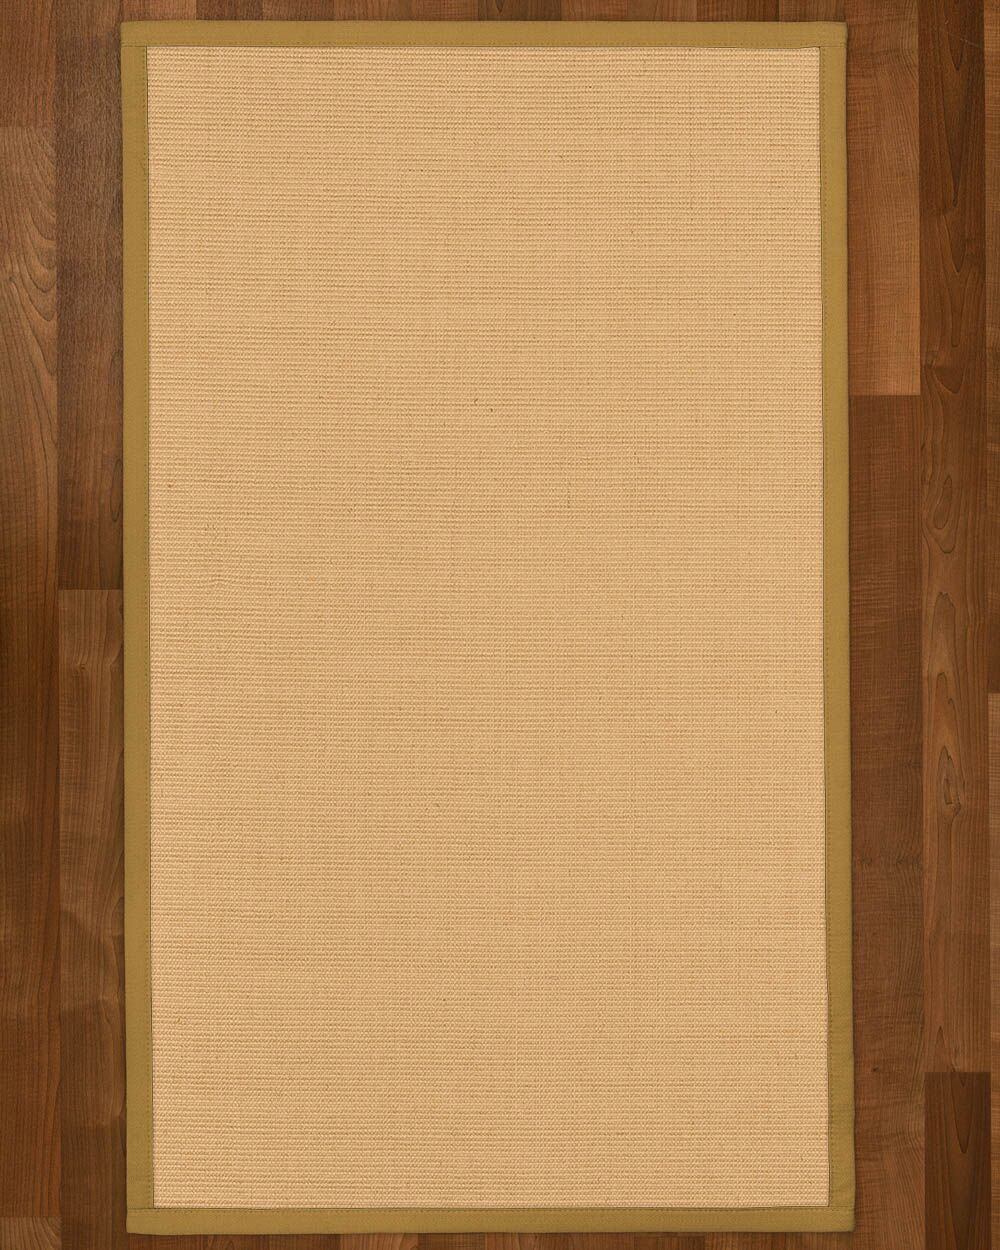 Rupendra Hand-Woven Beige Area Rug Rug Size: Runner 2'6